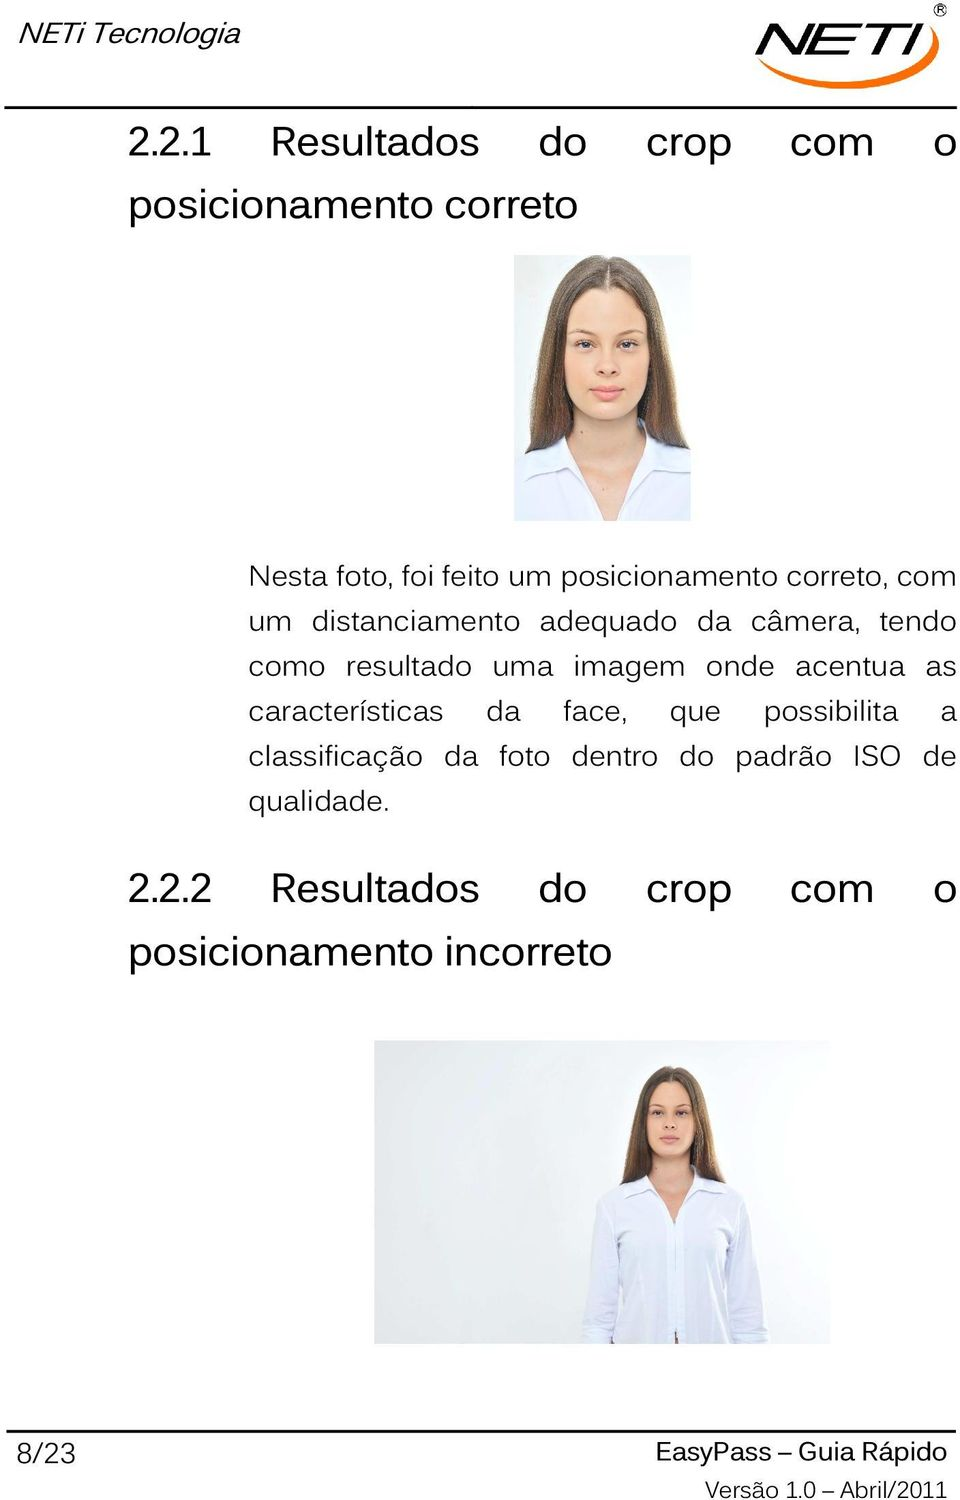 acentua as características da face, que possibilita a classificação da foto dentro do padrão